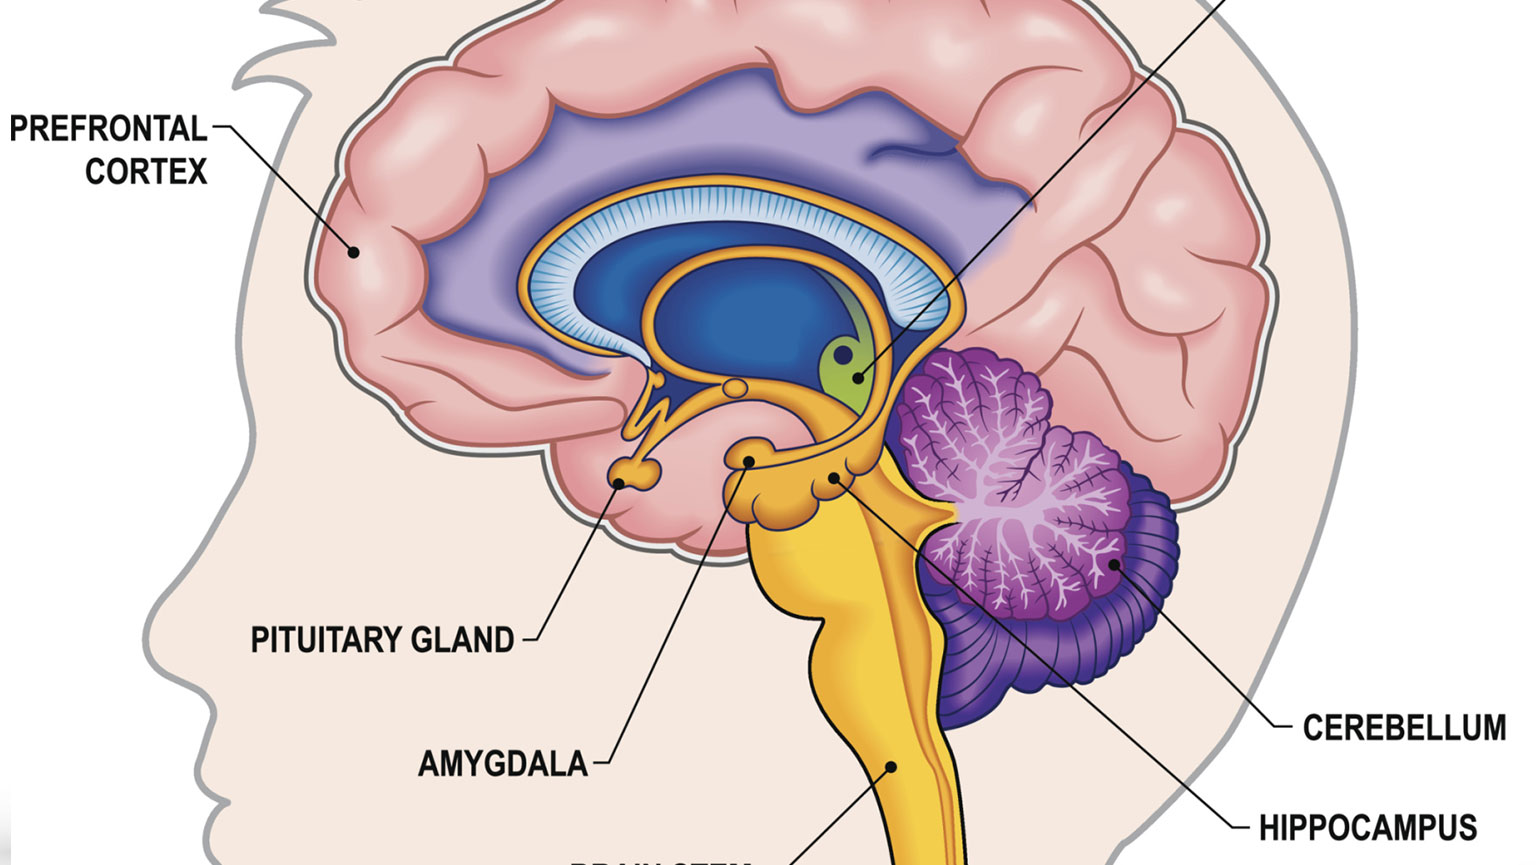 The Limbic System—Anatomy | The Great Courses Plus